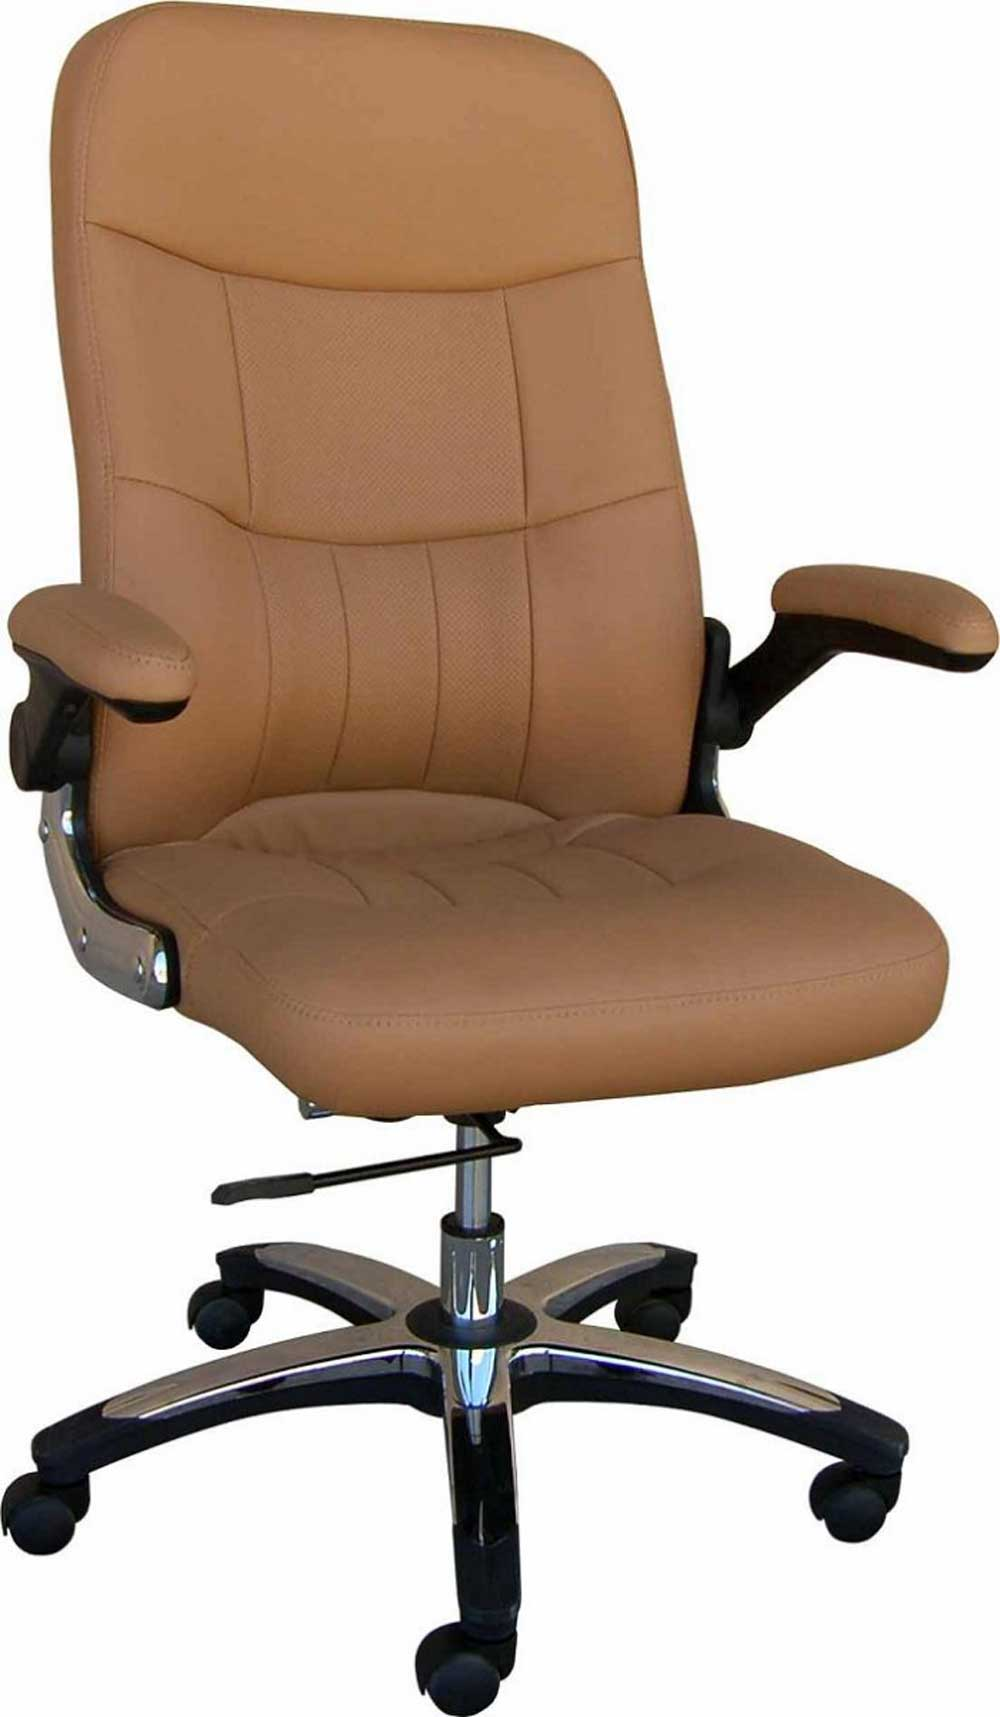 luxury brown adjustable office chairs